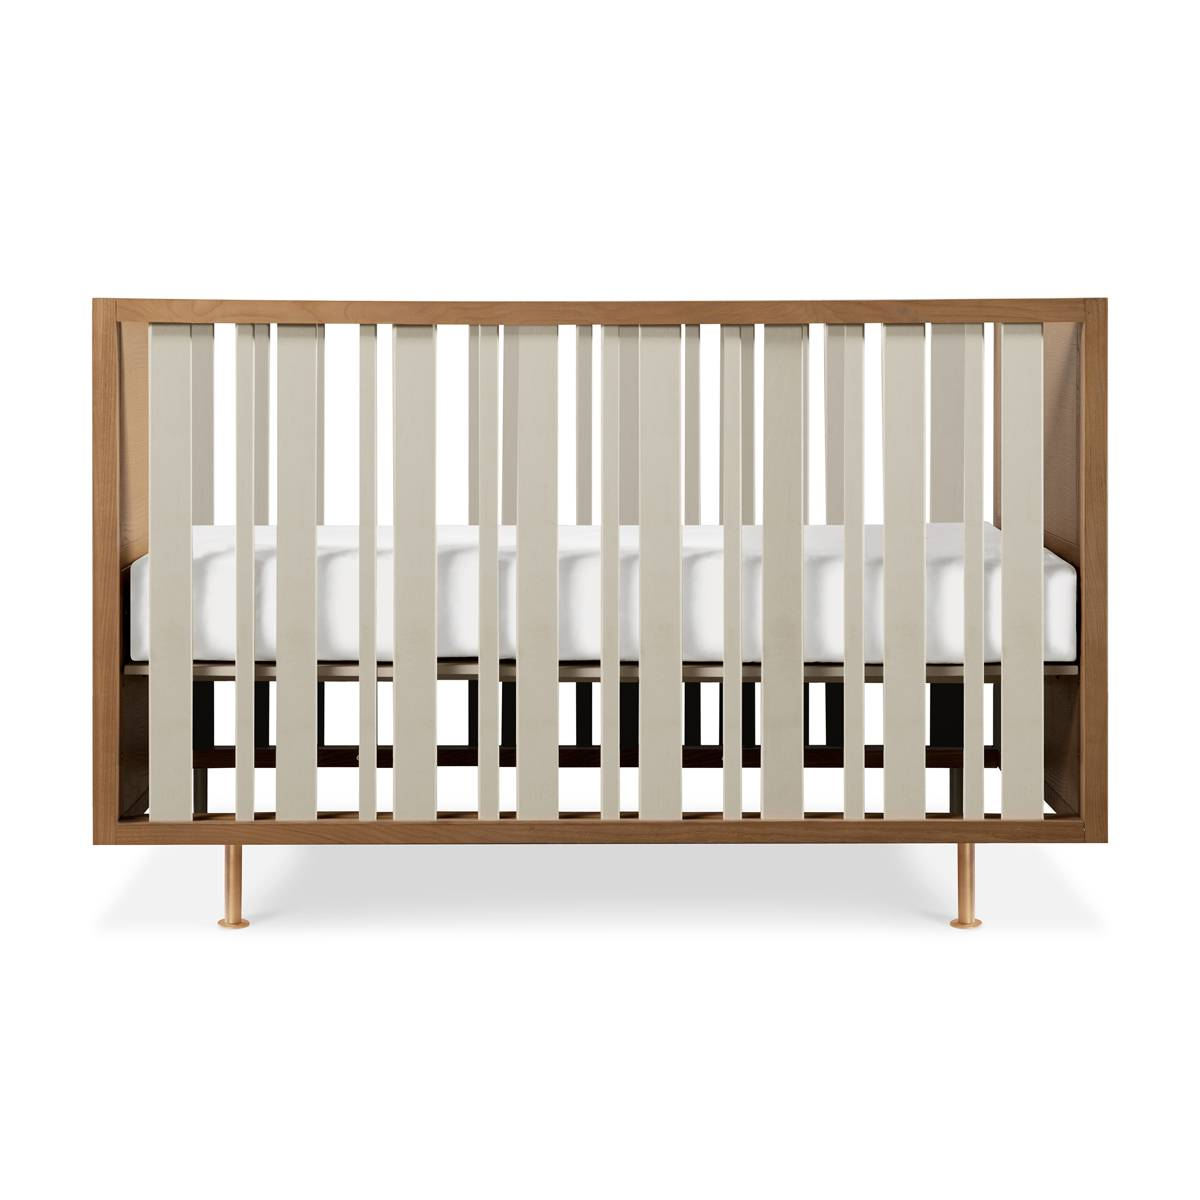 Nursery Works Novella Crib (Color: Stained Ash/Ivory)